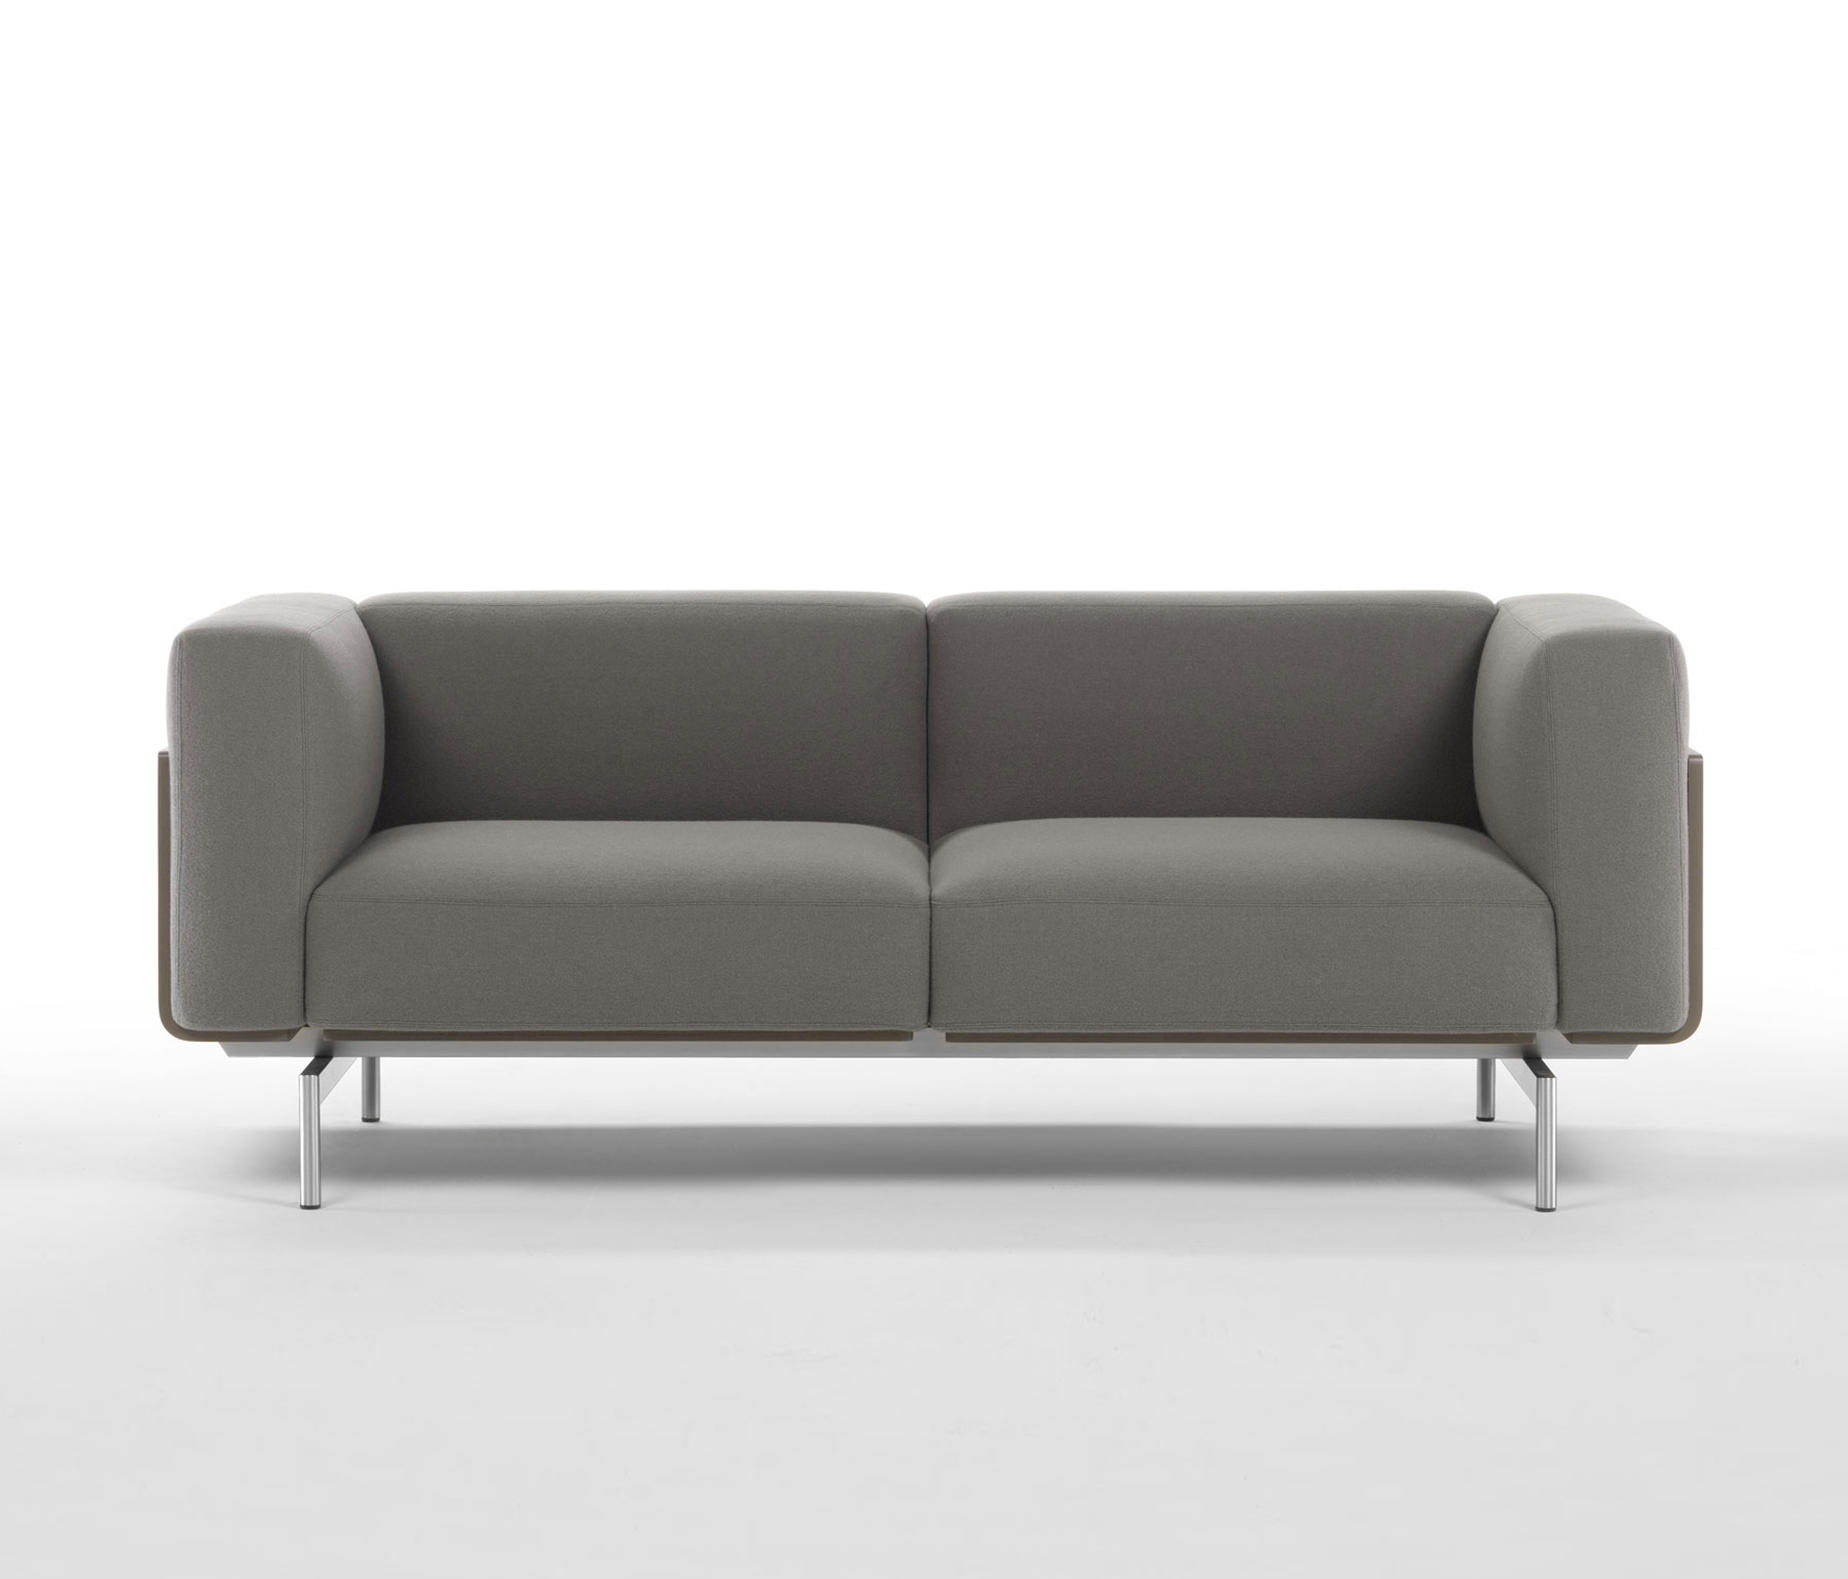 L Sofa By Marelli | Sofas ...